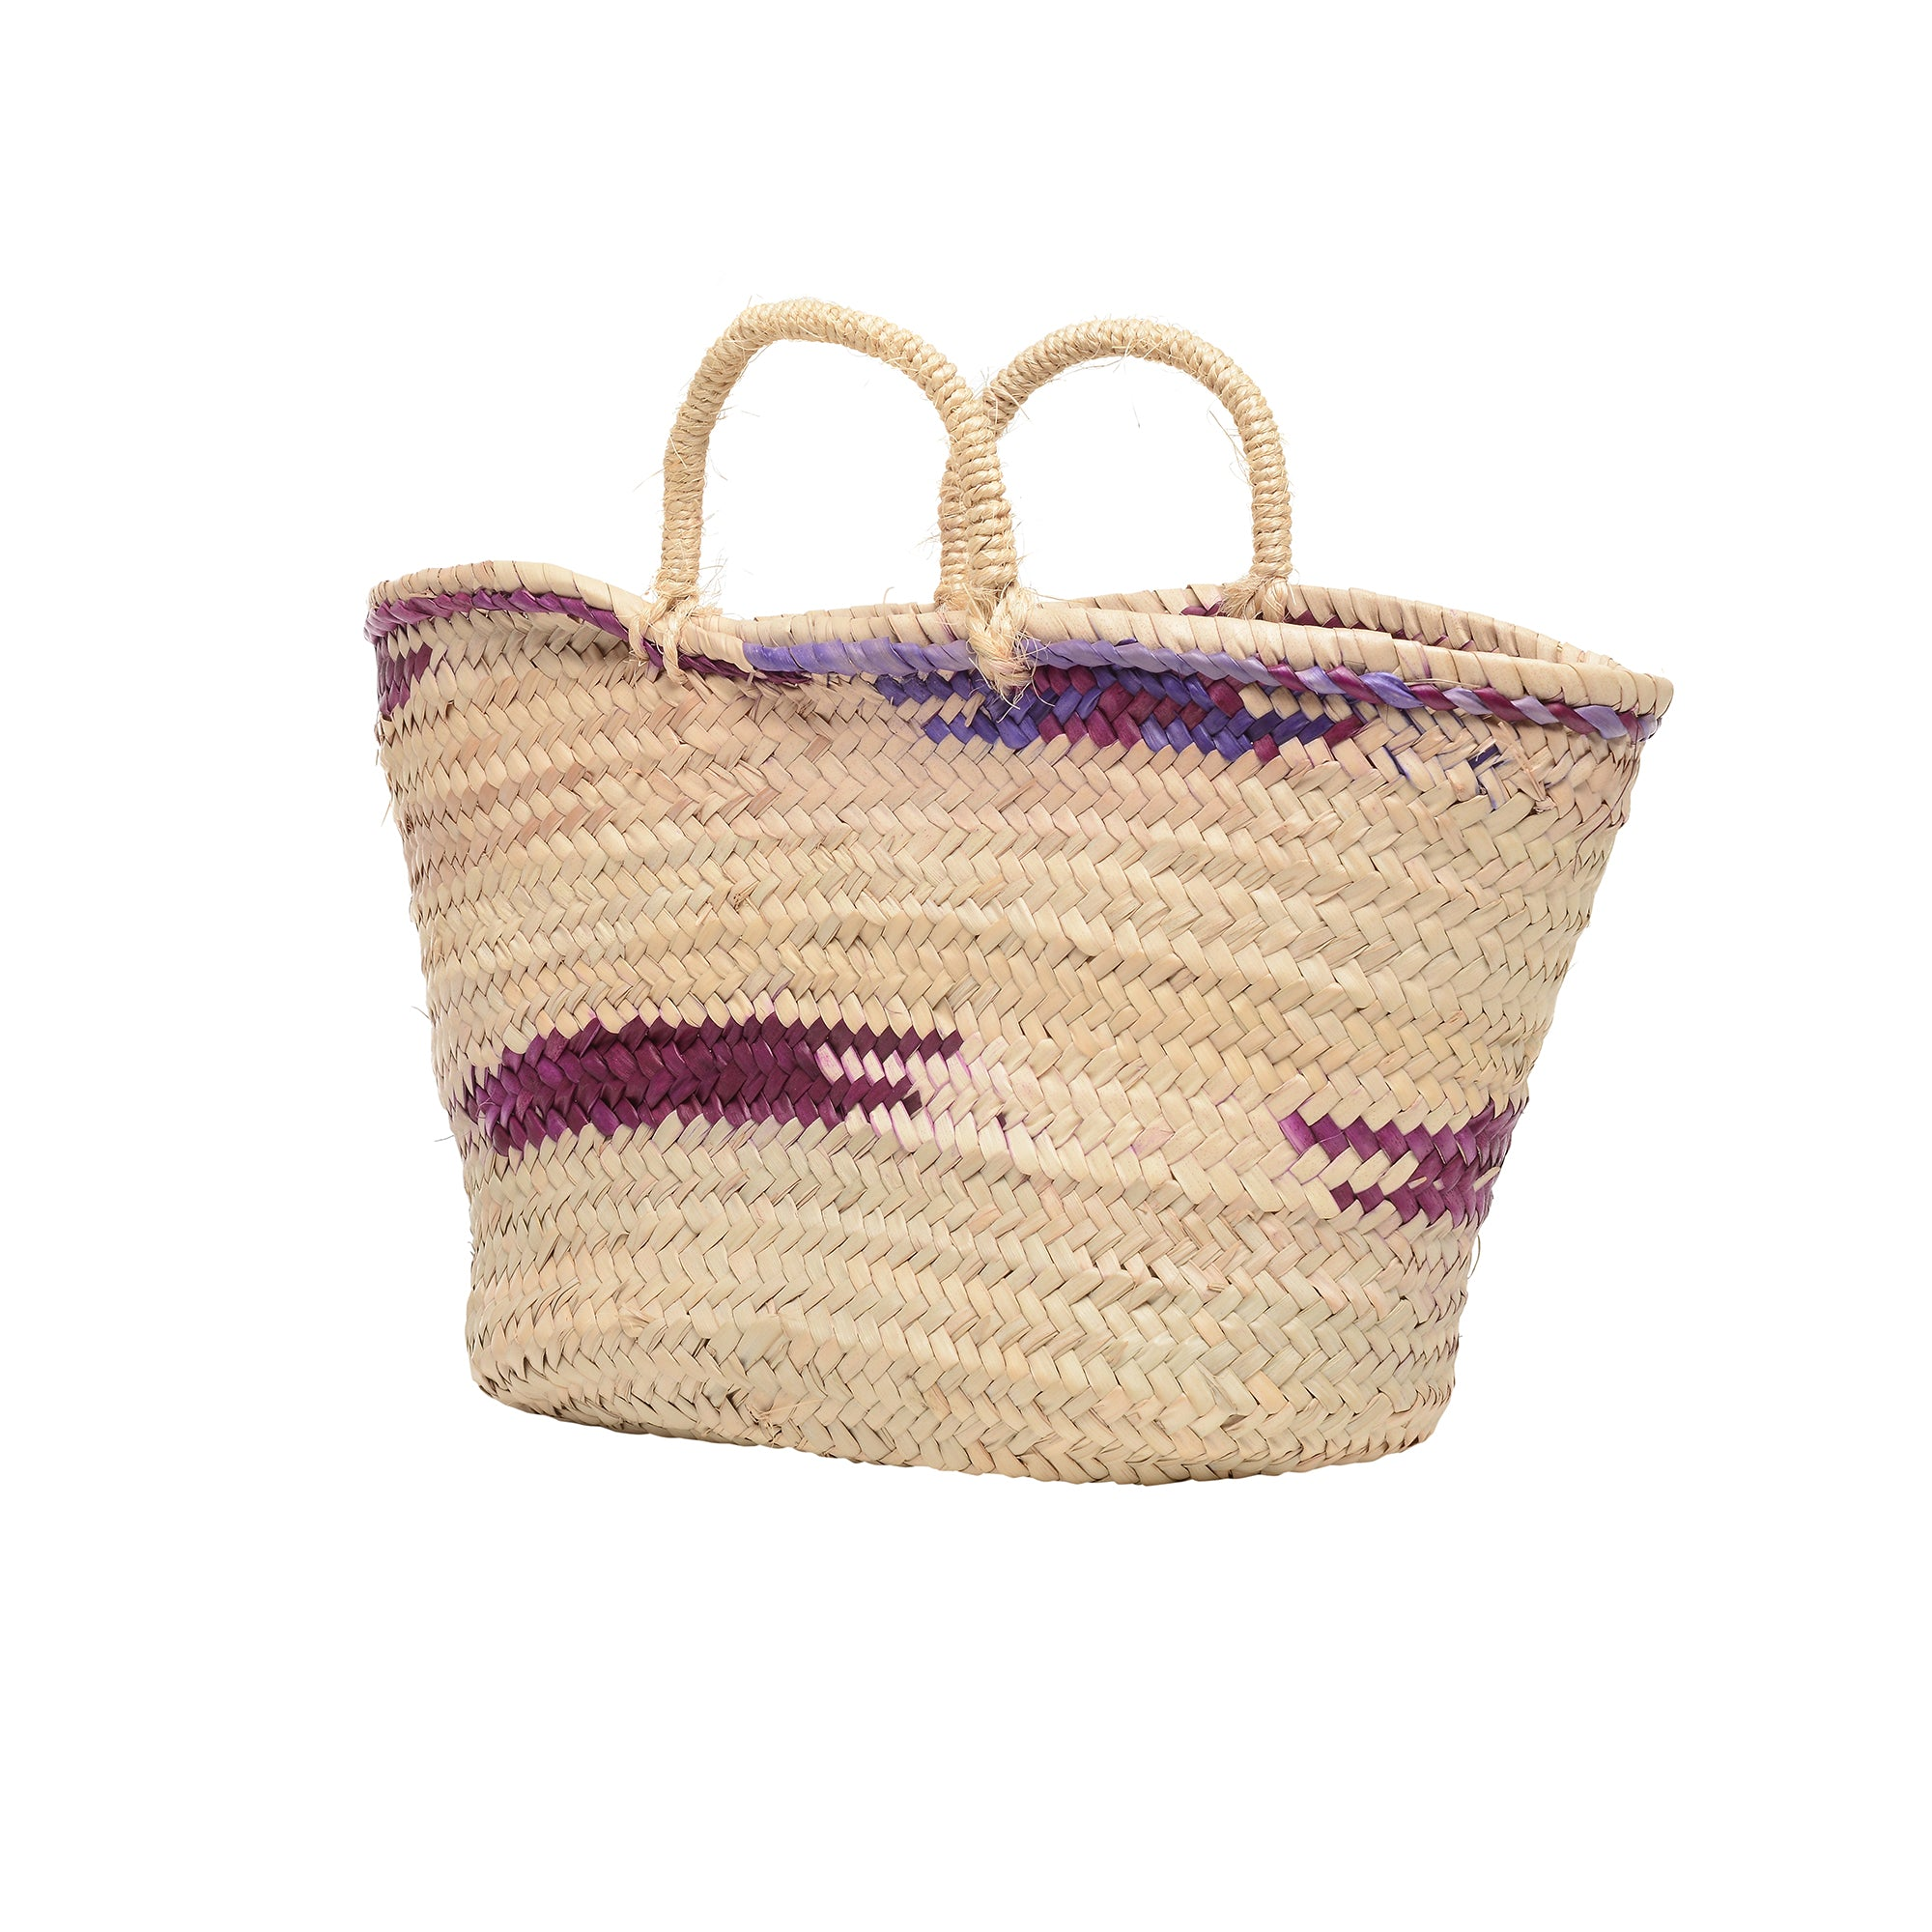 EXCLUSIVE petite Mallorcan basket in Grape